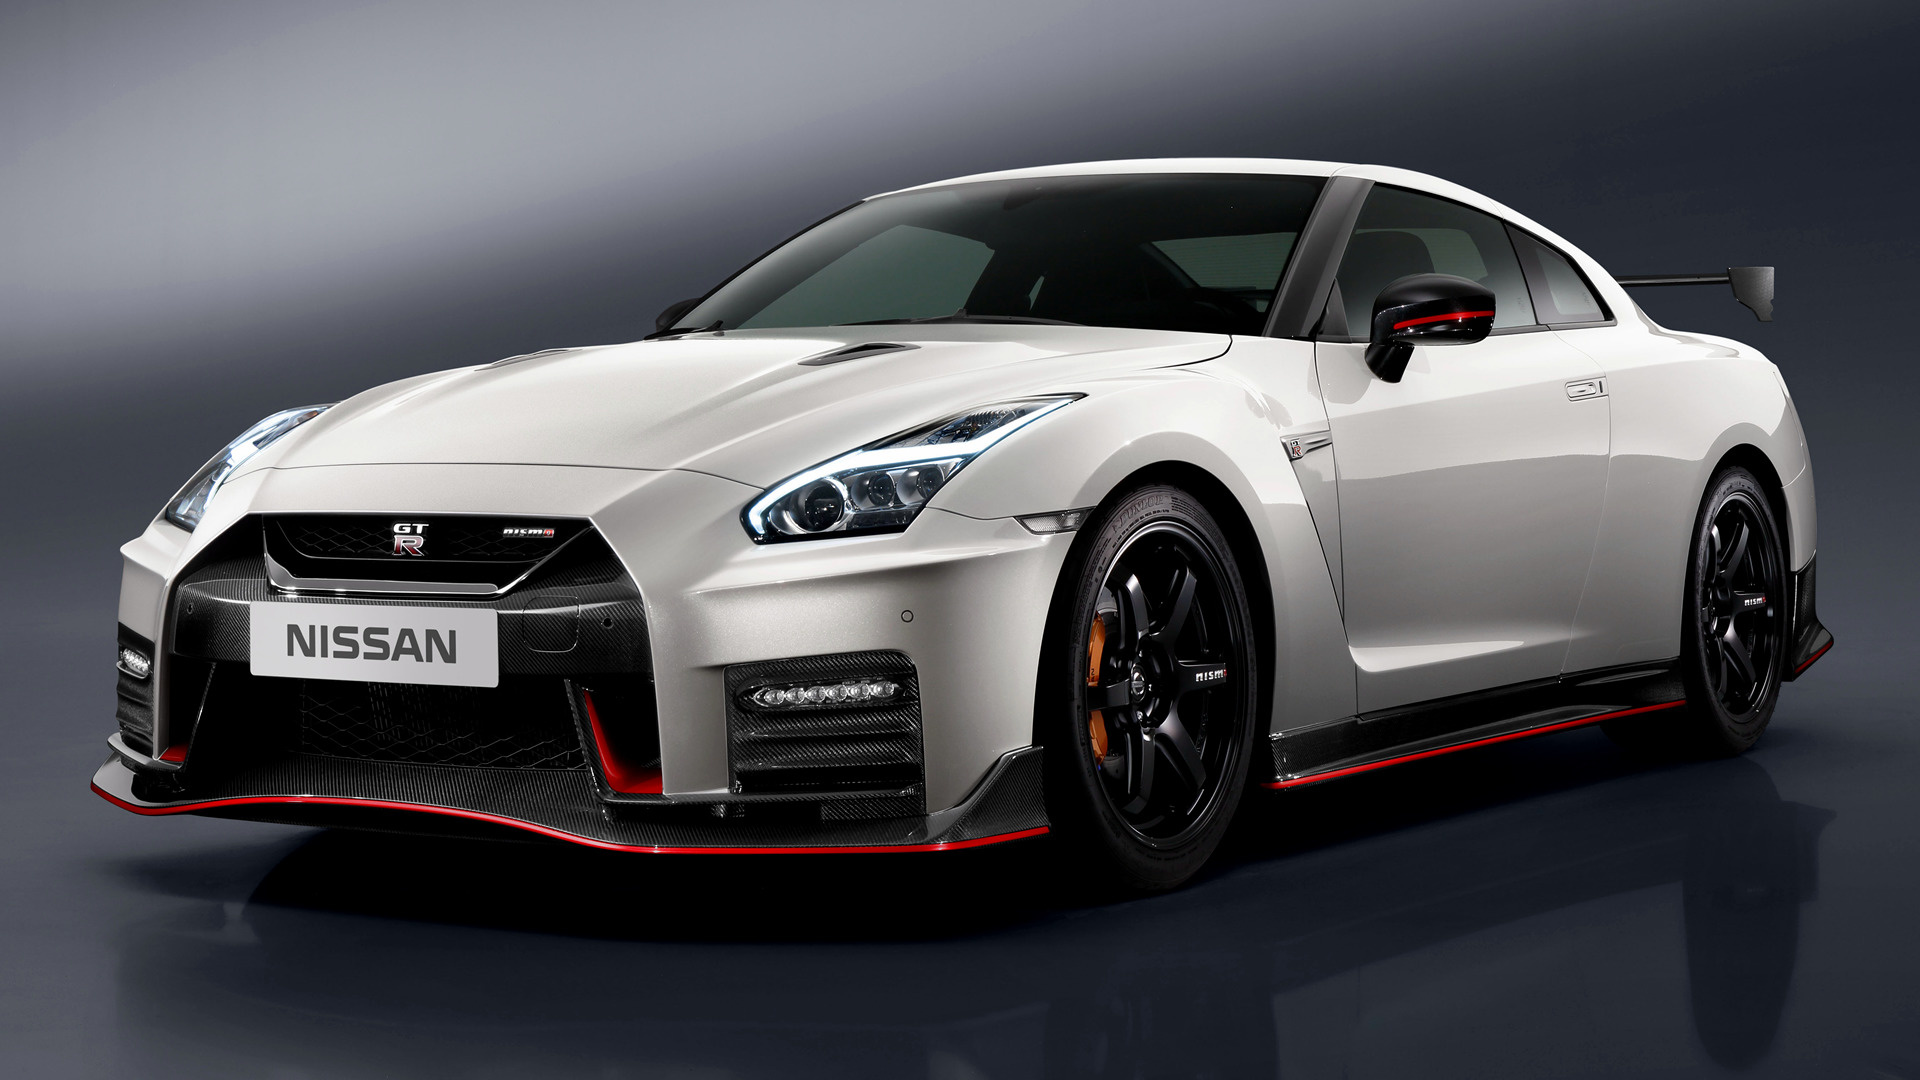 2017 Nissan Gtr First Look Wallpaper Hd: Nissan GT-R Nismo (2016) Wallpapers And HD Images